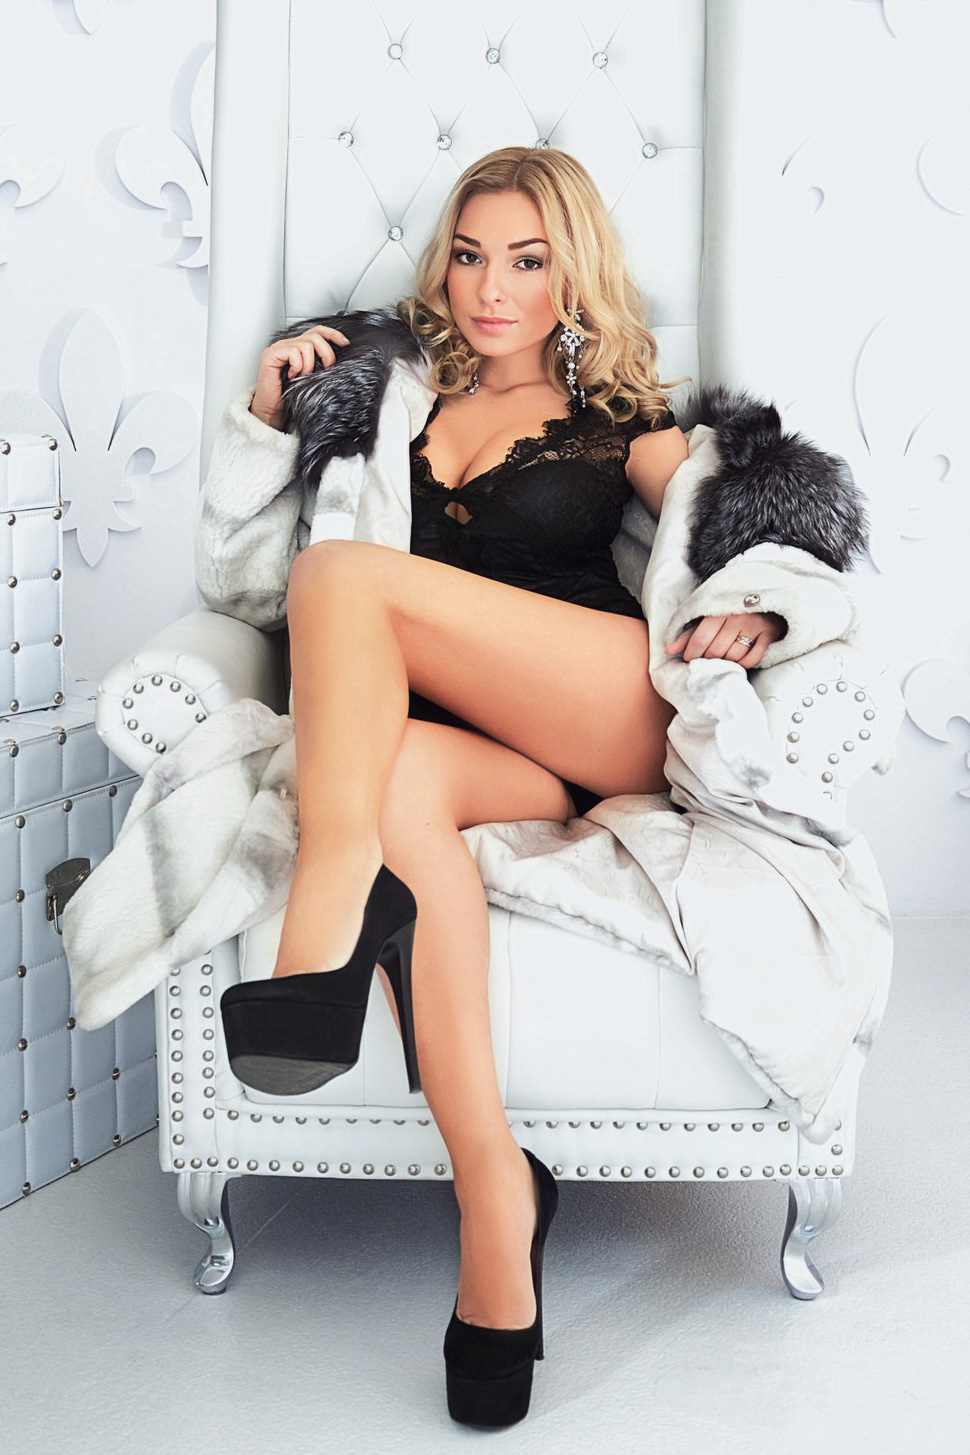 photo: ukraine dating gorgeous blonde